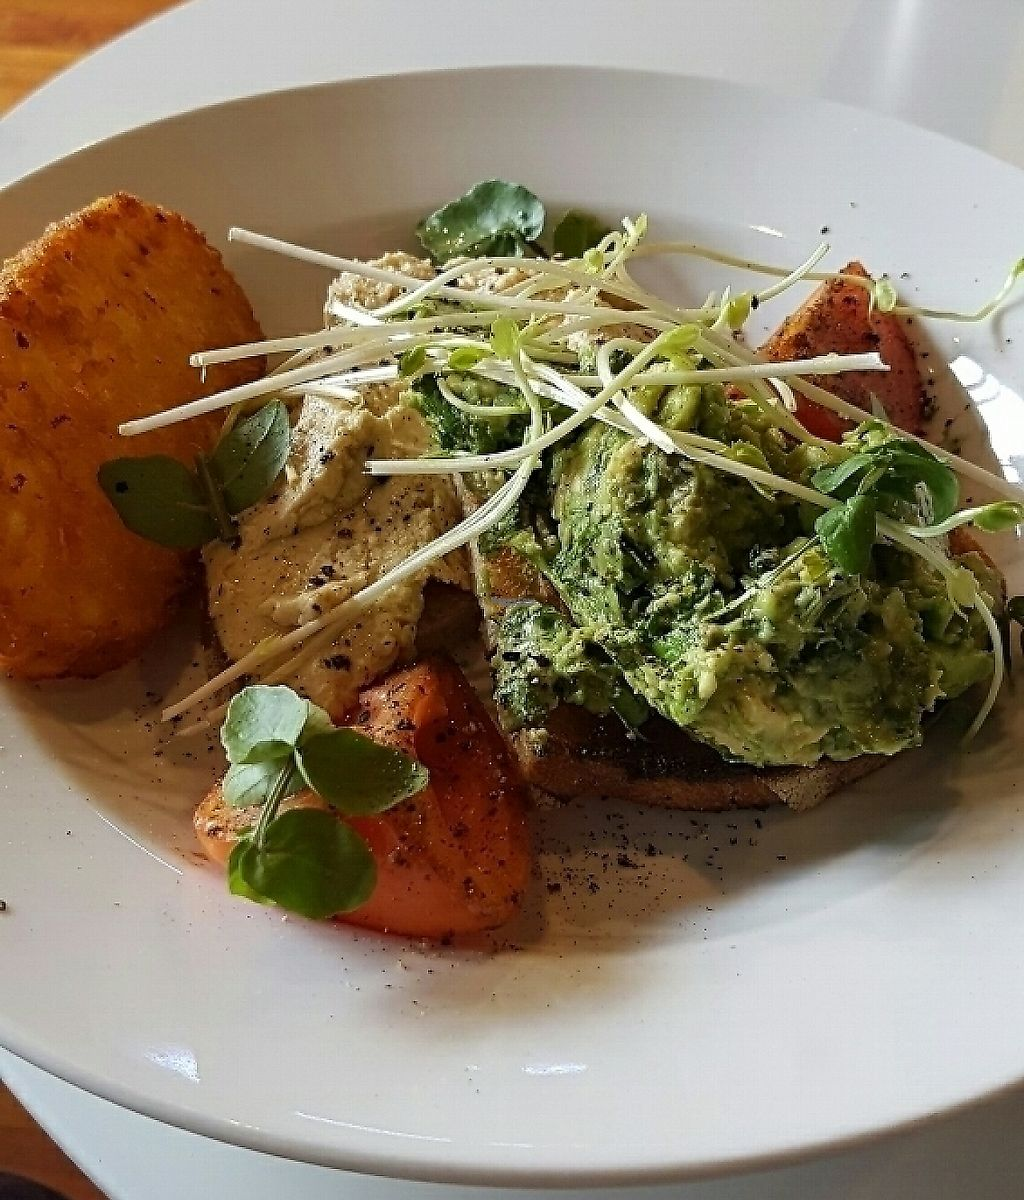 """Photo of CLOSED: Cuppa Tea  by <a href=""""/members/profile/Lulubear"""">Lulubear</a> <br/>Veganised avo and hummus brekkie with hash brown. Yum! <br/> November 14, 2016  - <a href='/contact/abuse/image/78574/261881'>Report</a>"""